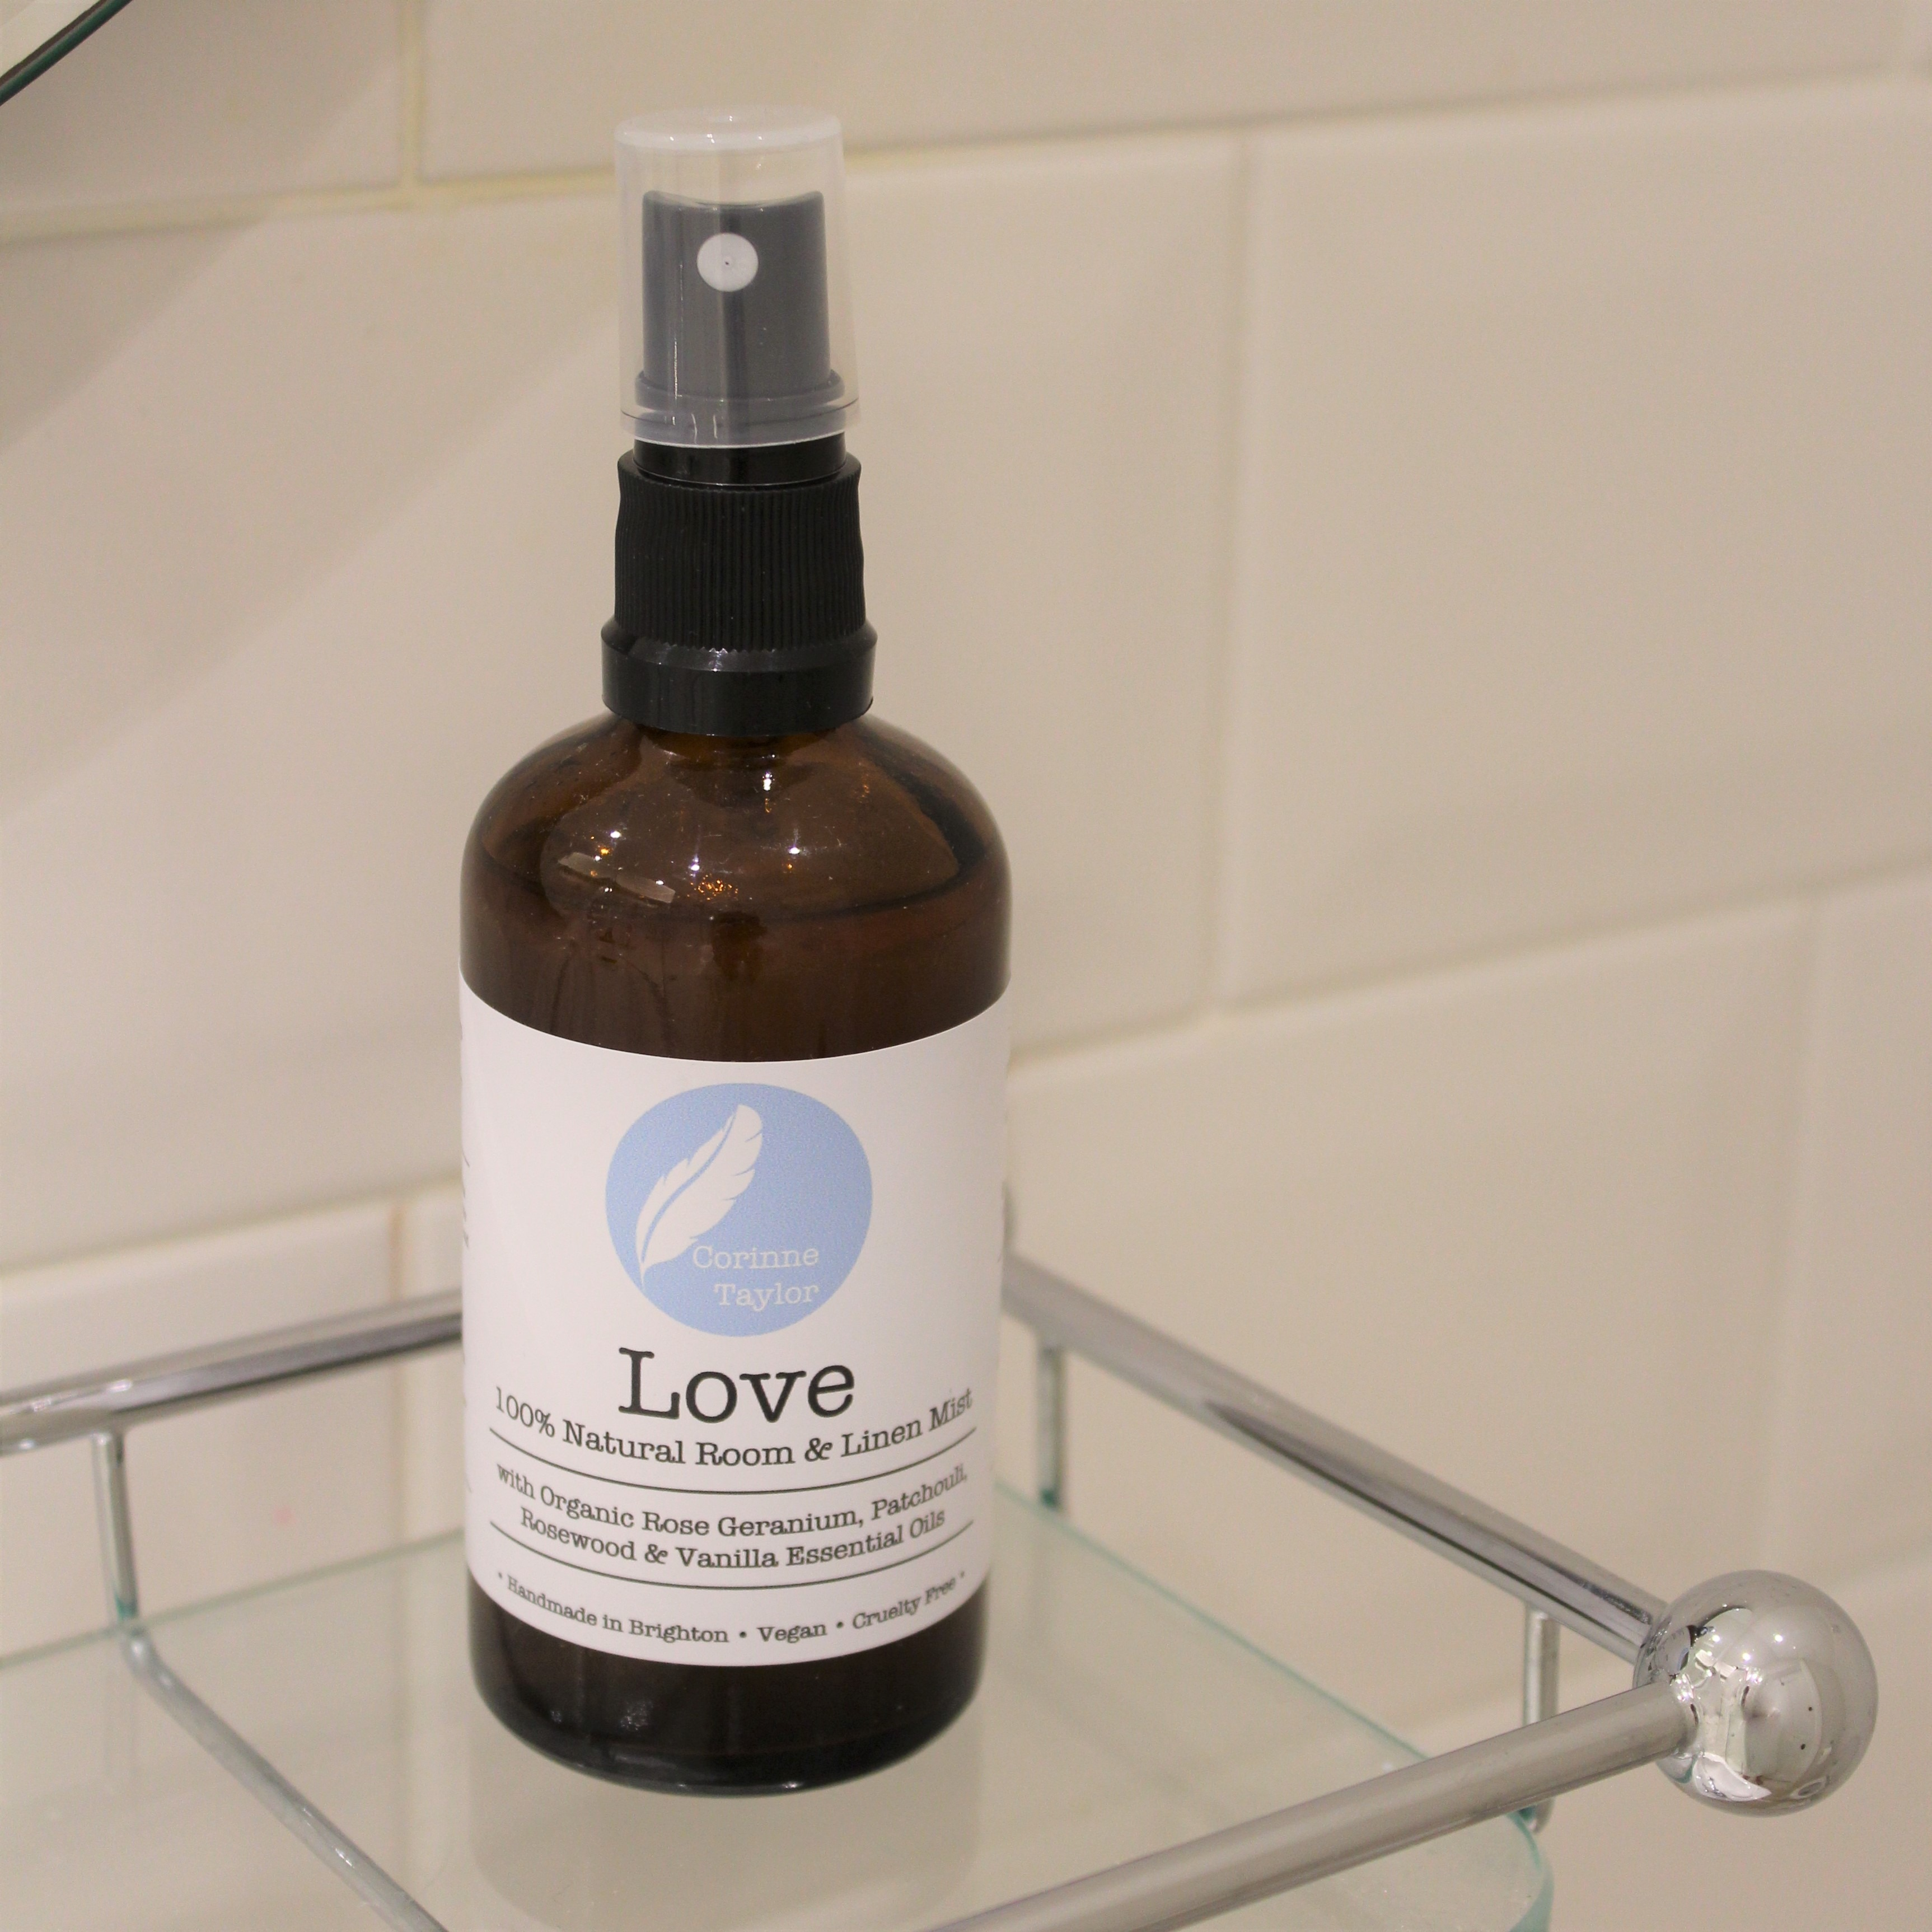 Love Room & Linen Mist by Corinne Taylor